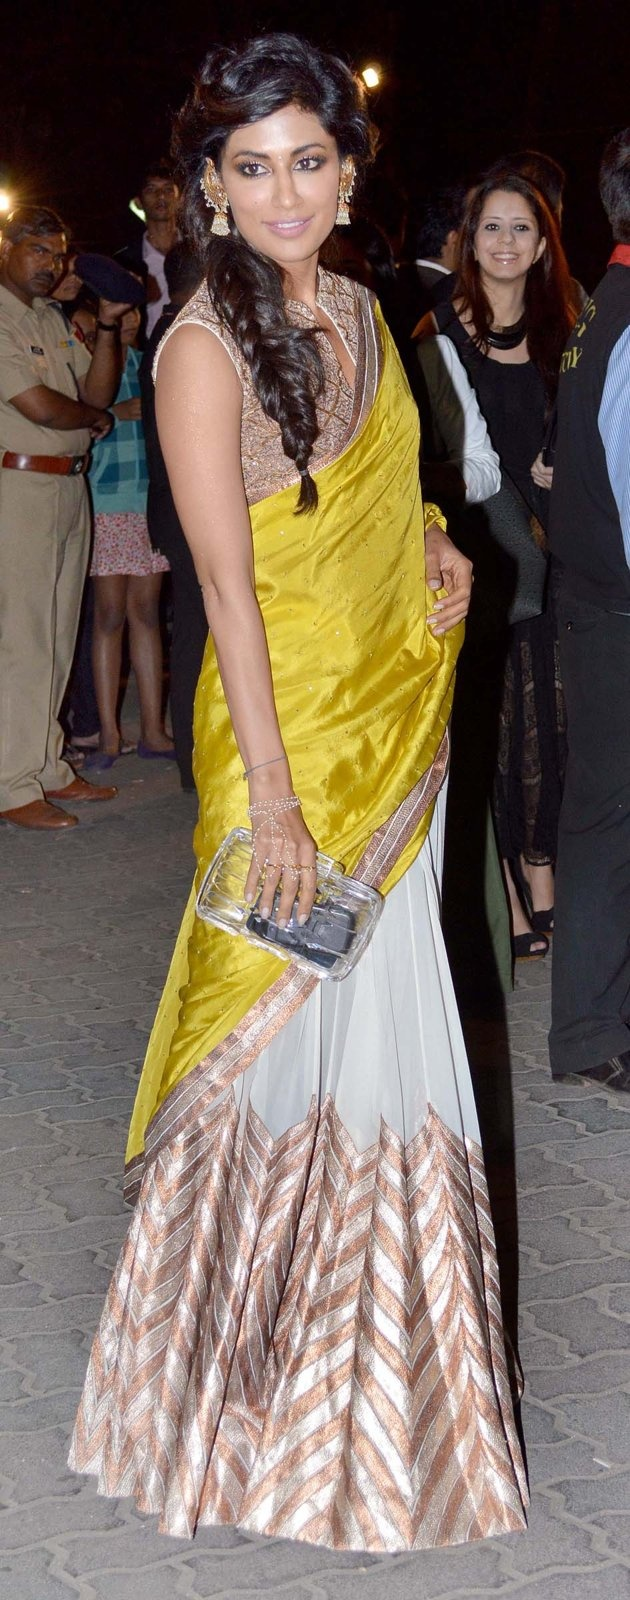 Chitrangada Singh- not a fan of the yellow here, I think a jewel tone green would work better. Love the cooper and white plus the braid!!